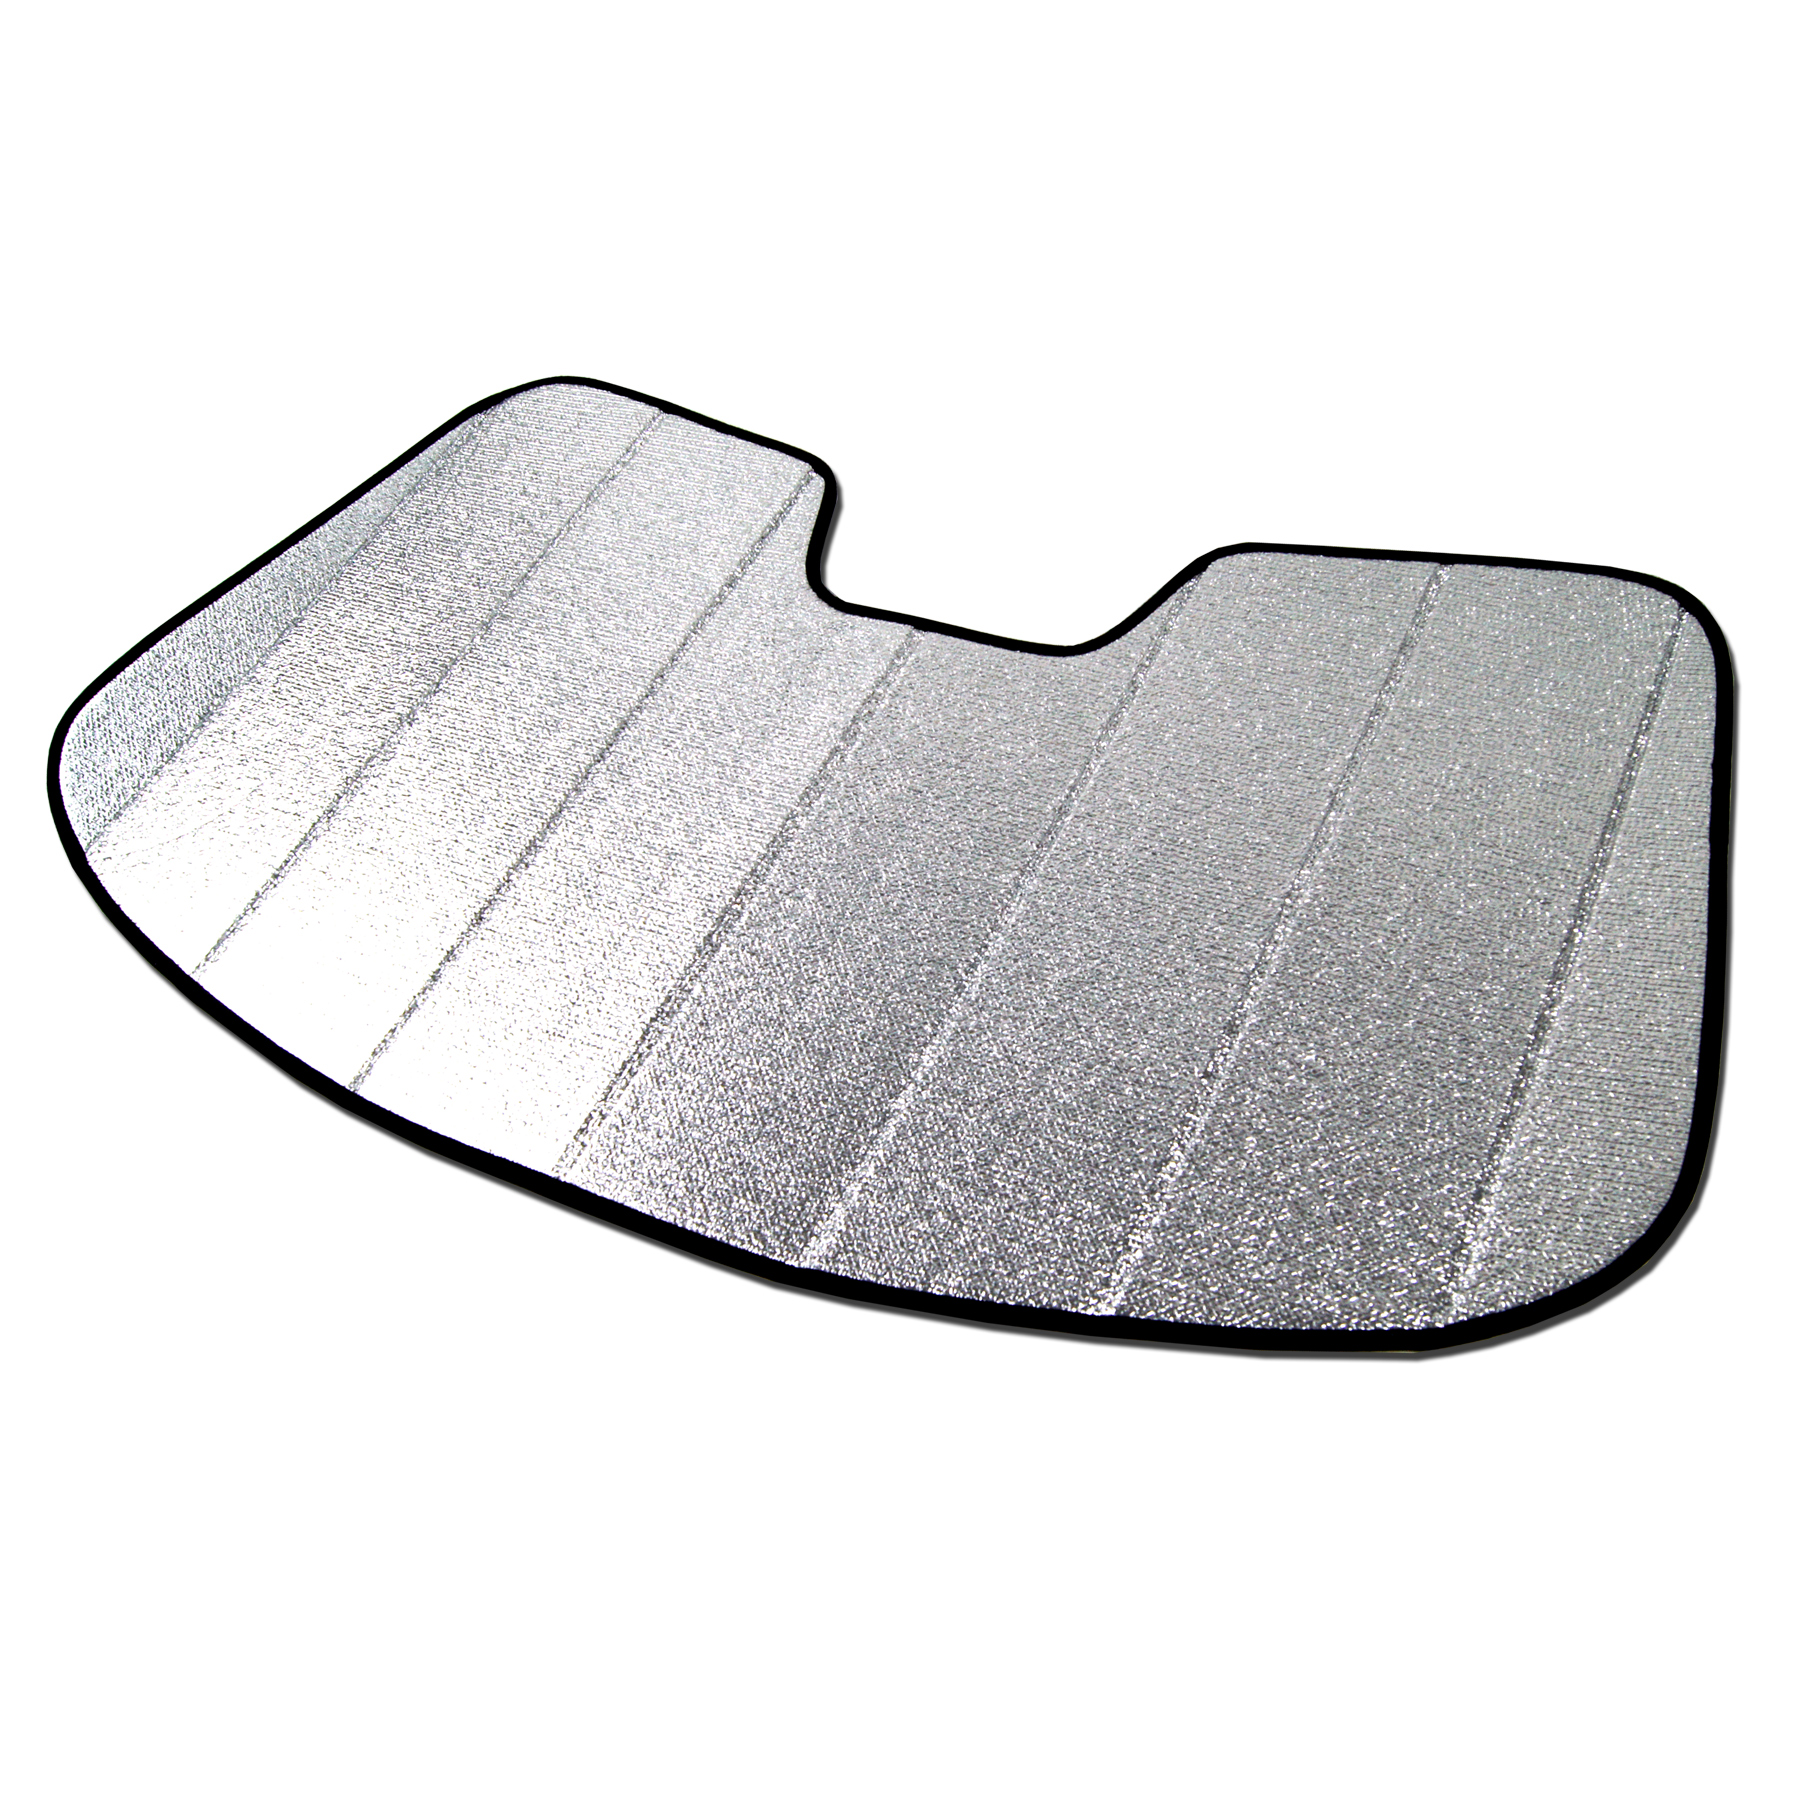 Tuningpros SS-001 Custom Fit Silver And Grey Windshield